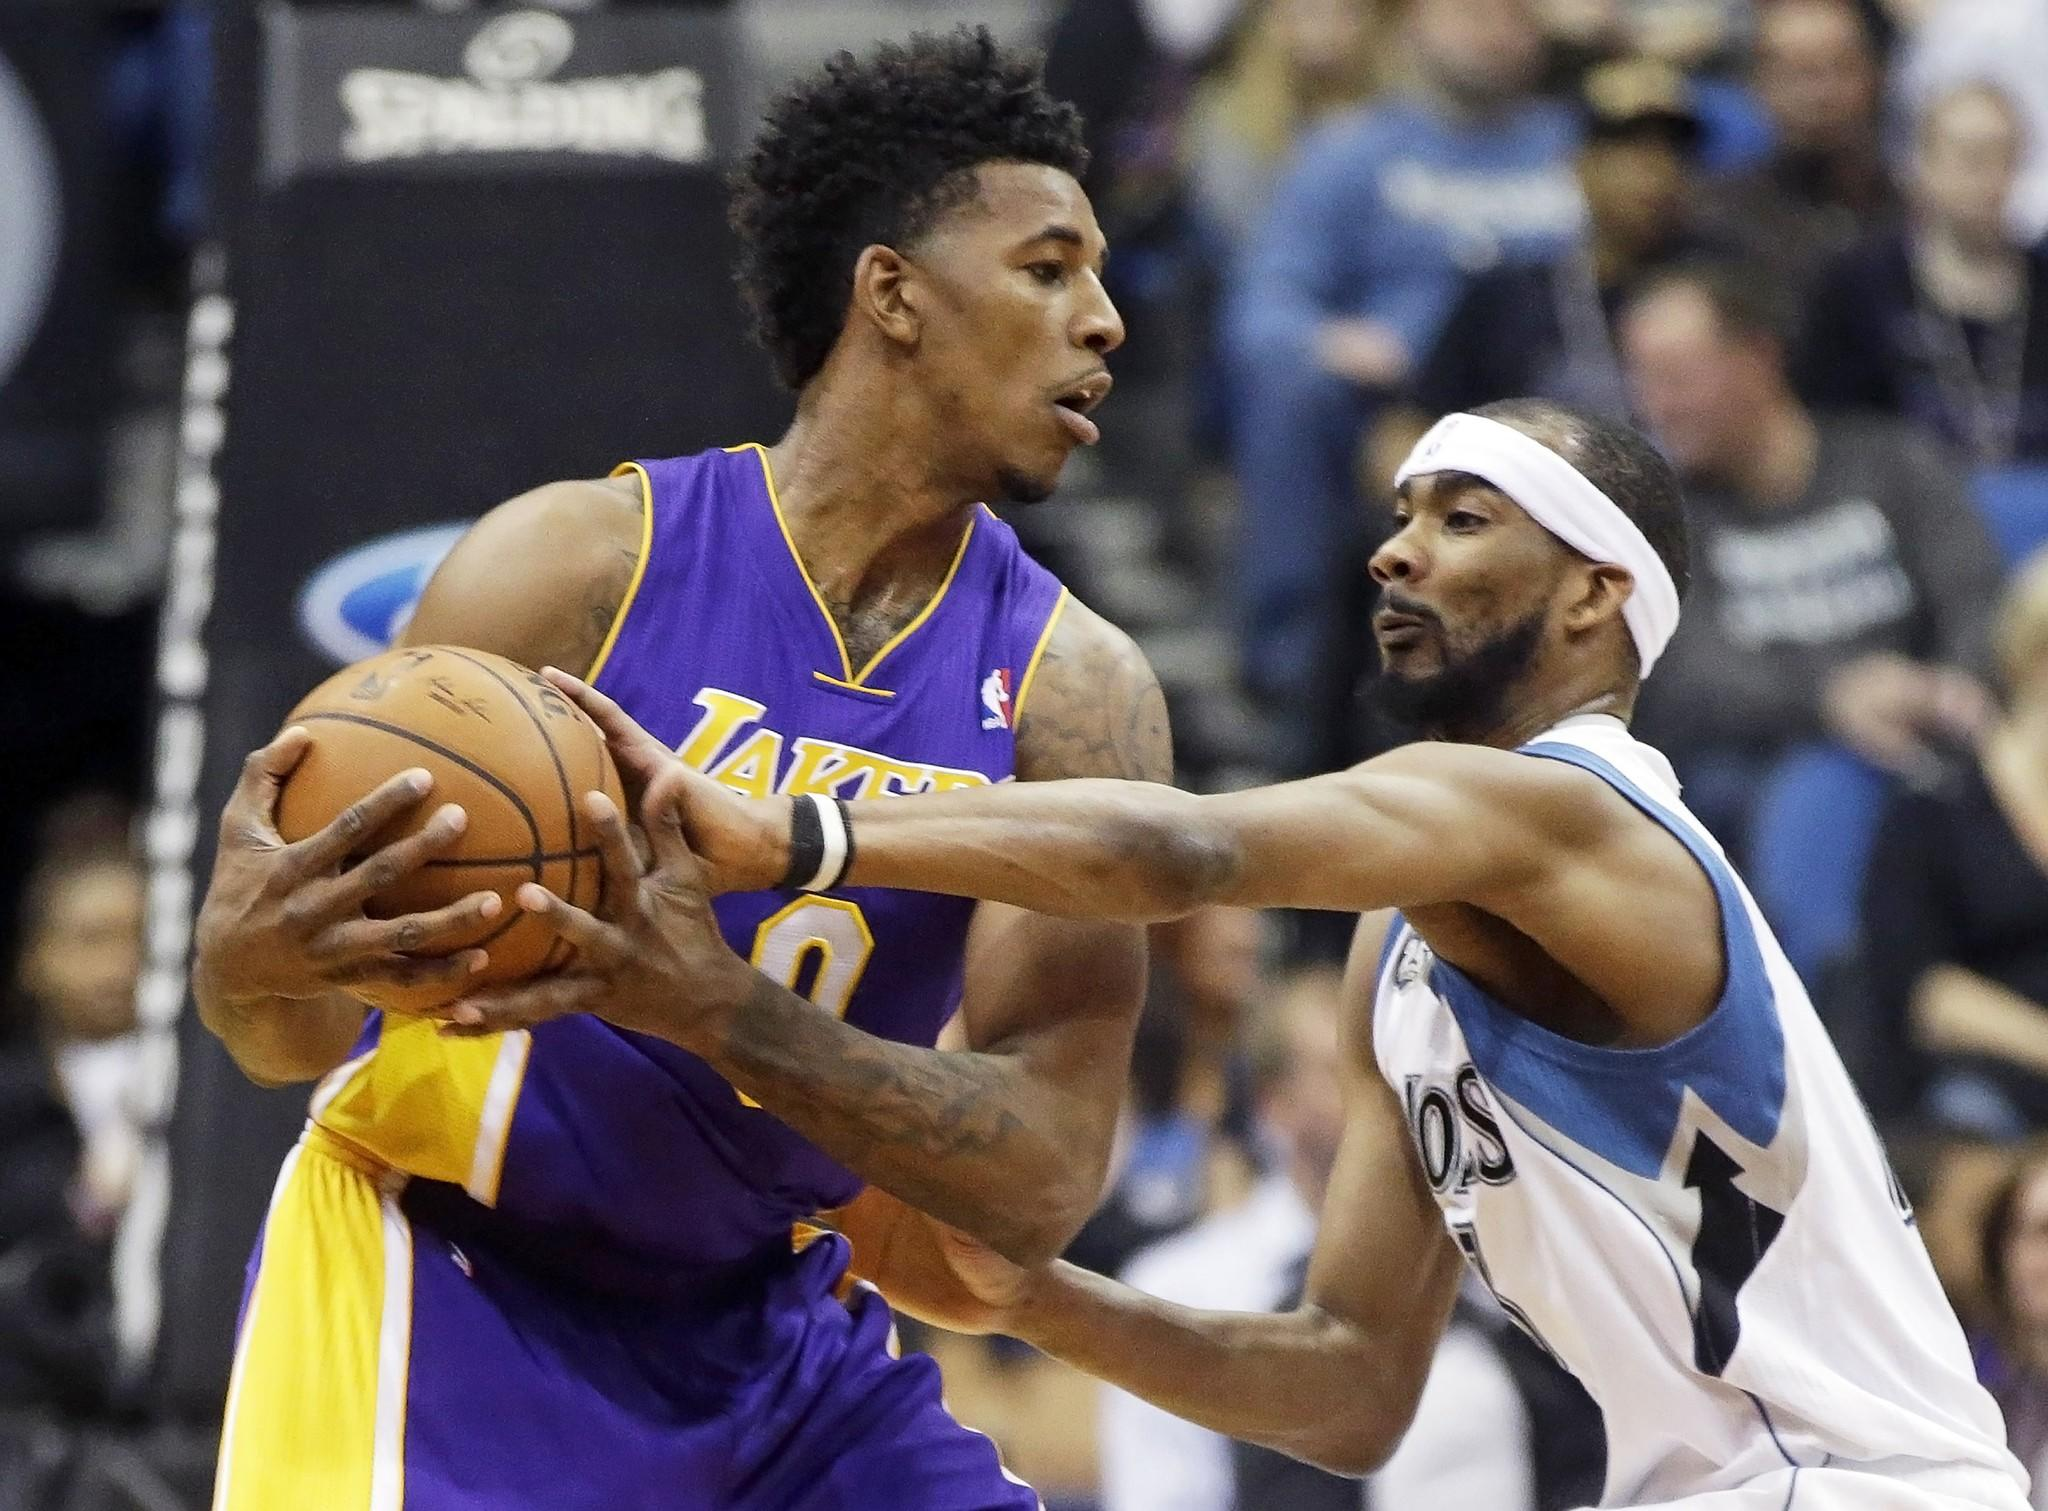 Nick Young tries to keep the ball away from Minnesota's Corey Brewer during the first quarter Tuesday at the Target Center in Minneapolis.